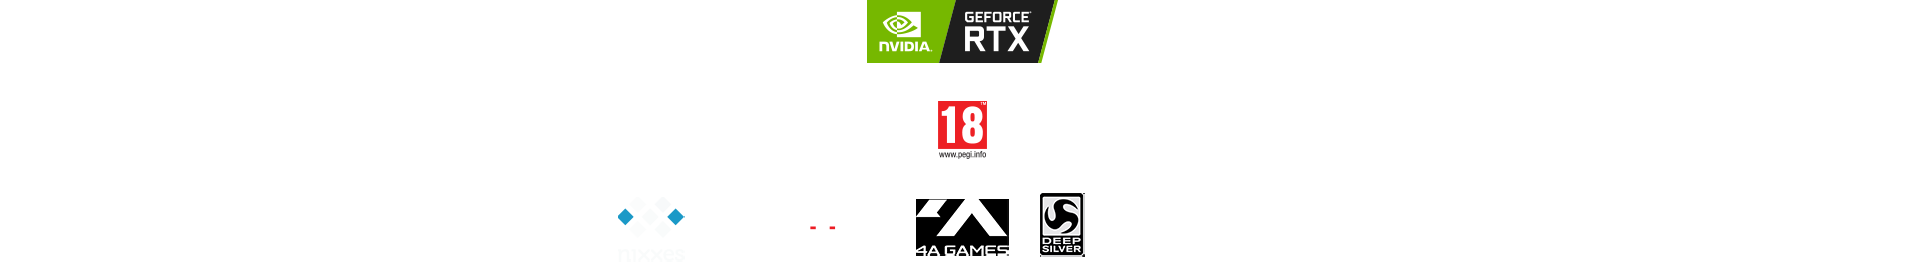 GeForce RTX Partner Logos